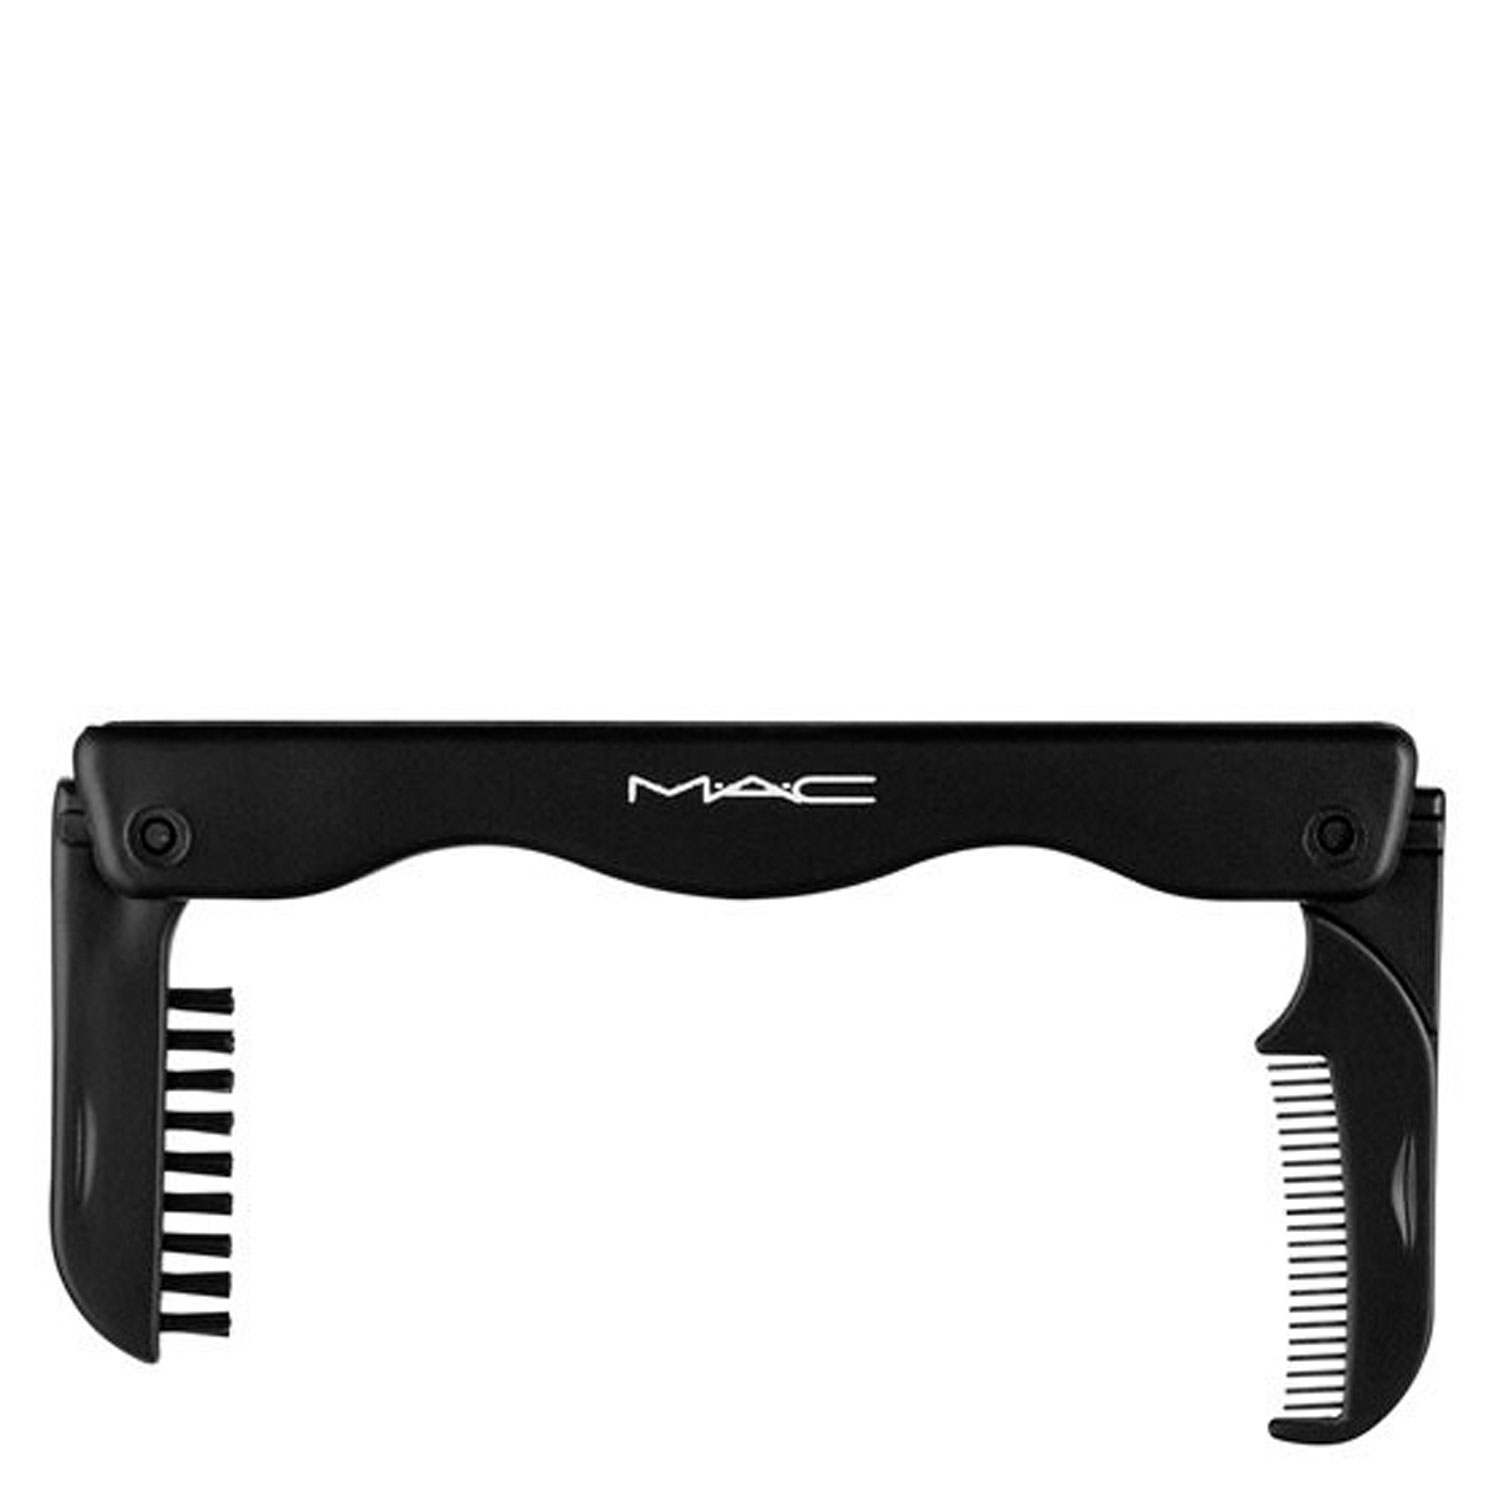 M·A·C Tools - Duo Lash Comb/Brow Brush